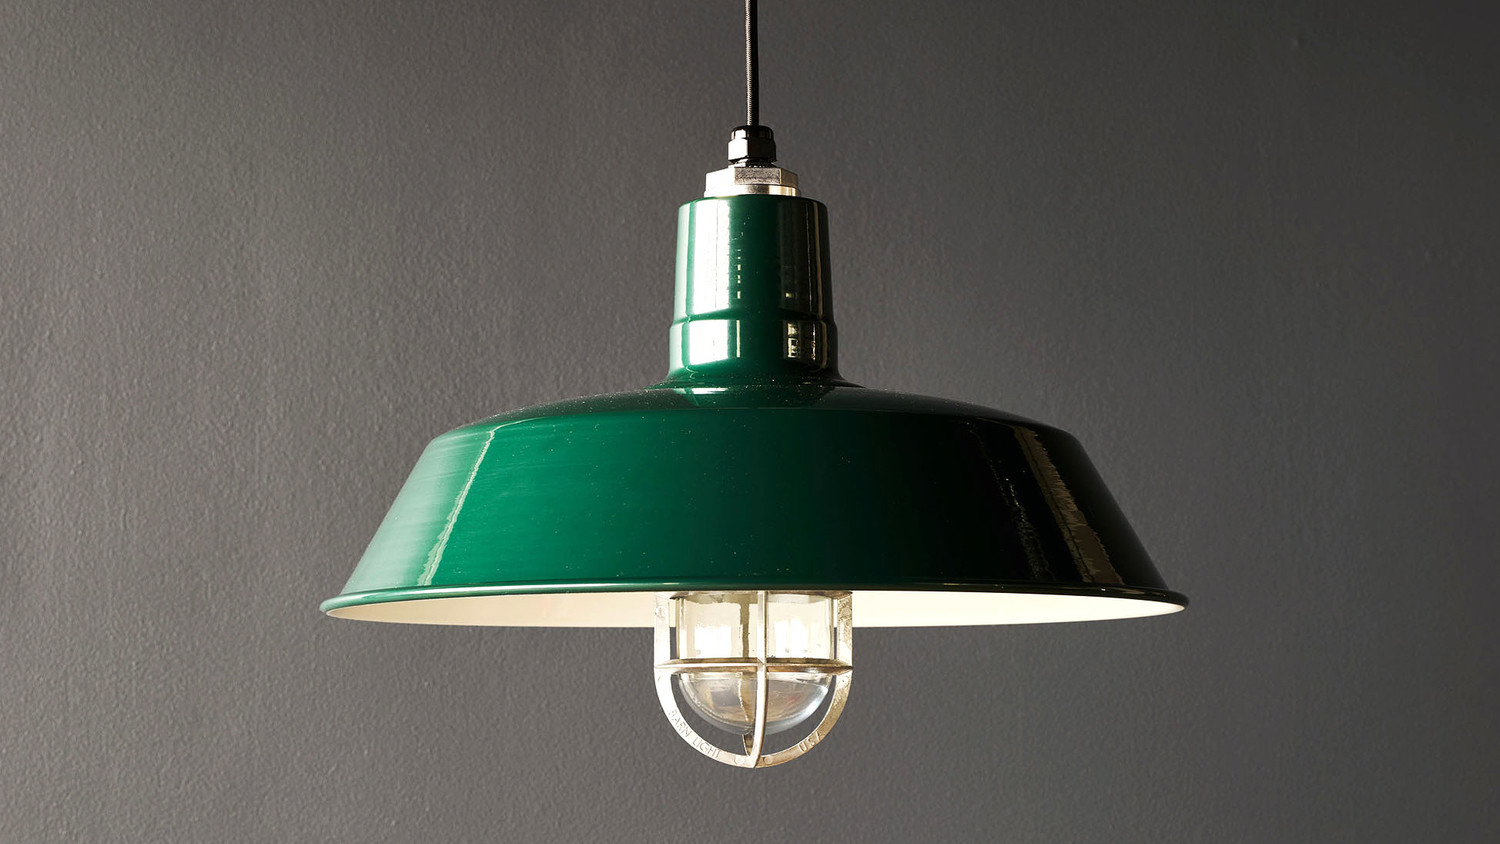 Deals On Priston 1 Light Single Dome Pendant Breakwater Bay Inside Priston 1 Light Single Dome Pendants (View 7 of 30)